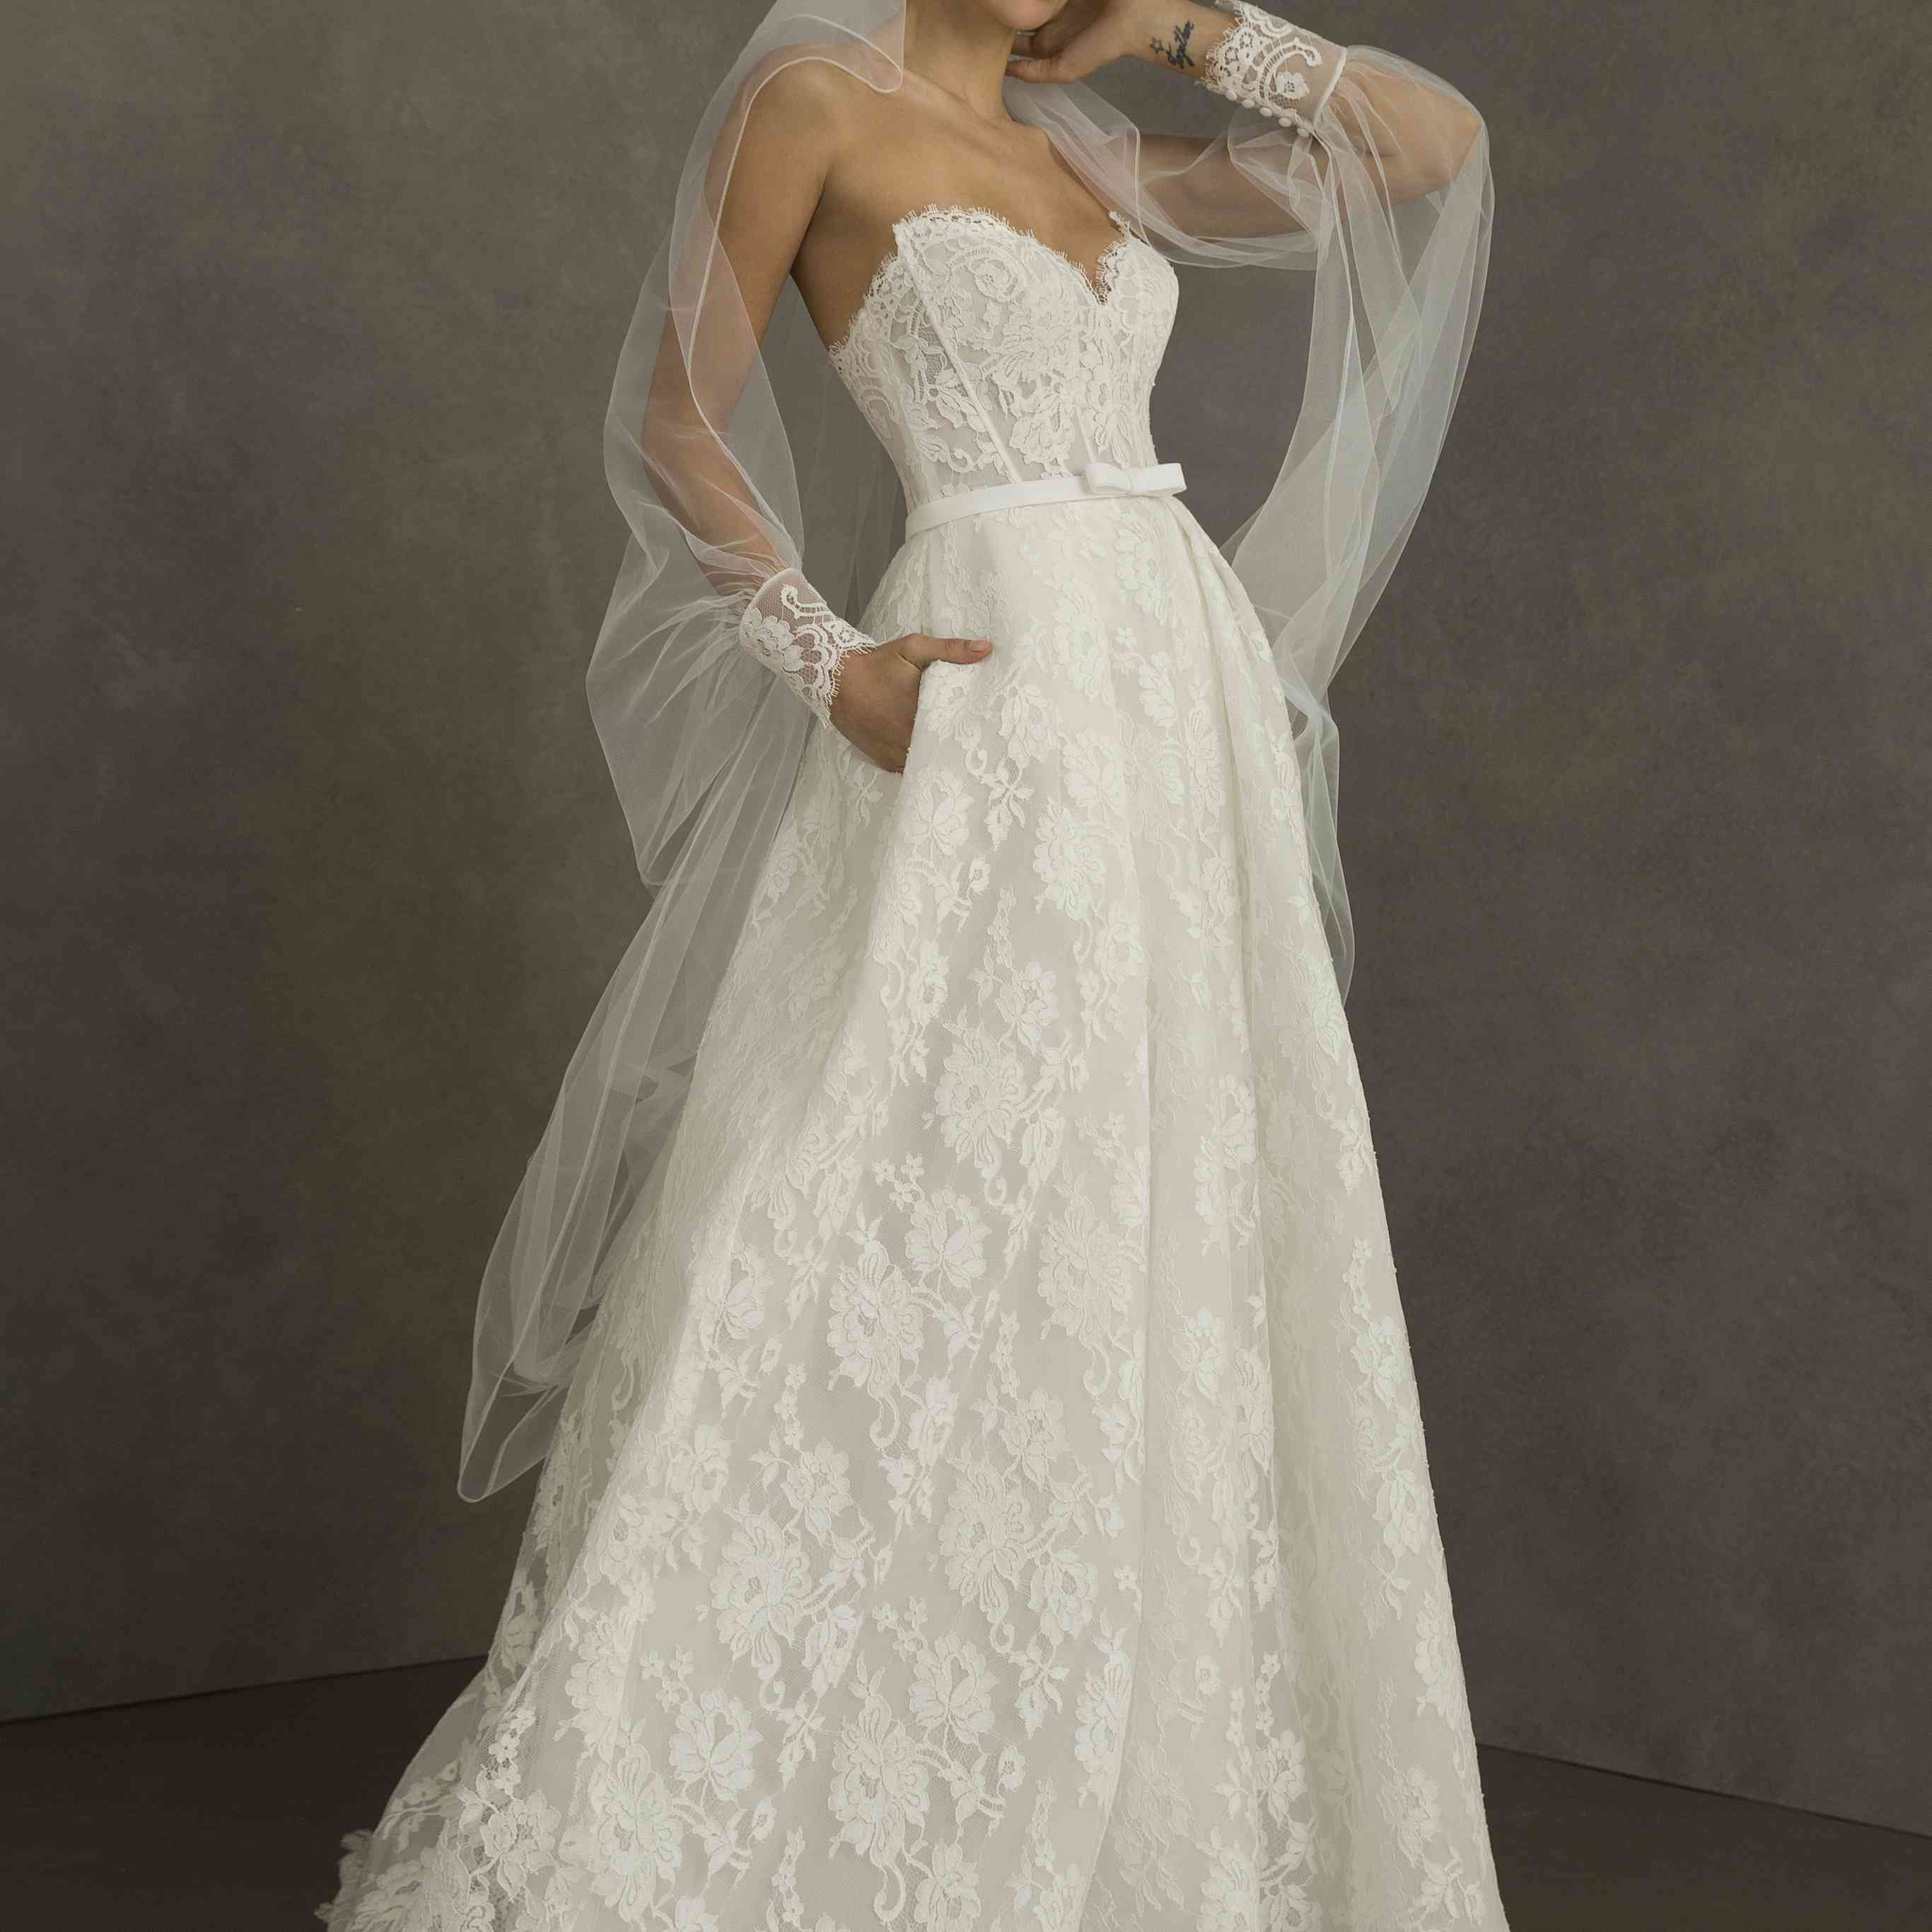 Model in strapless lace sweetheart ballgown with a thin waistband with a small bow detail